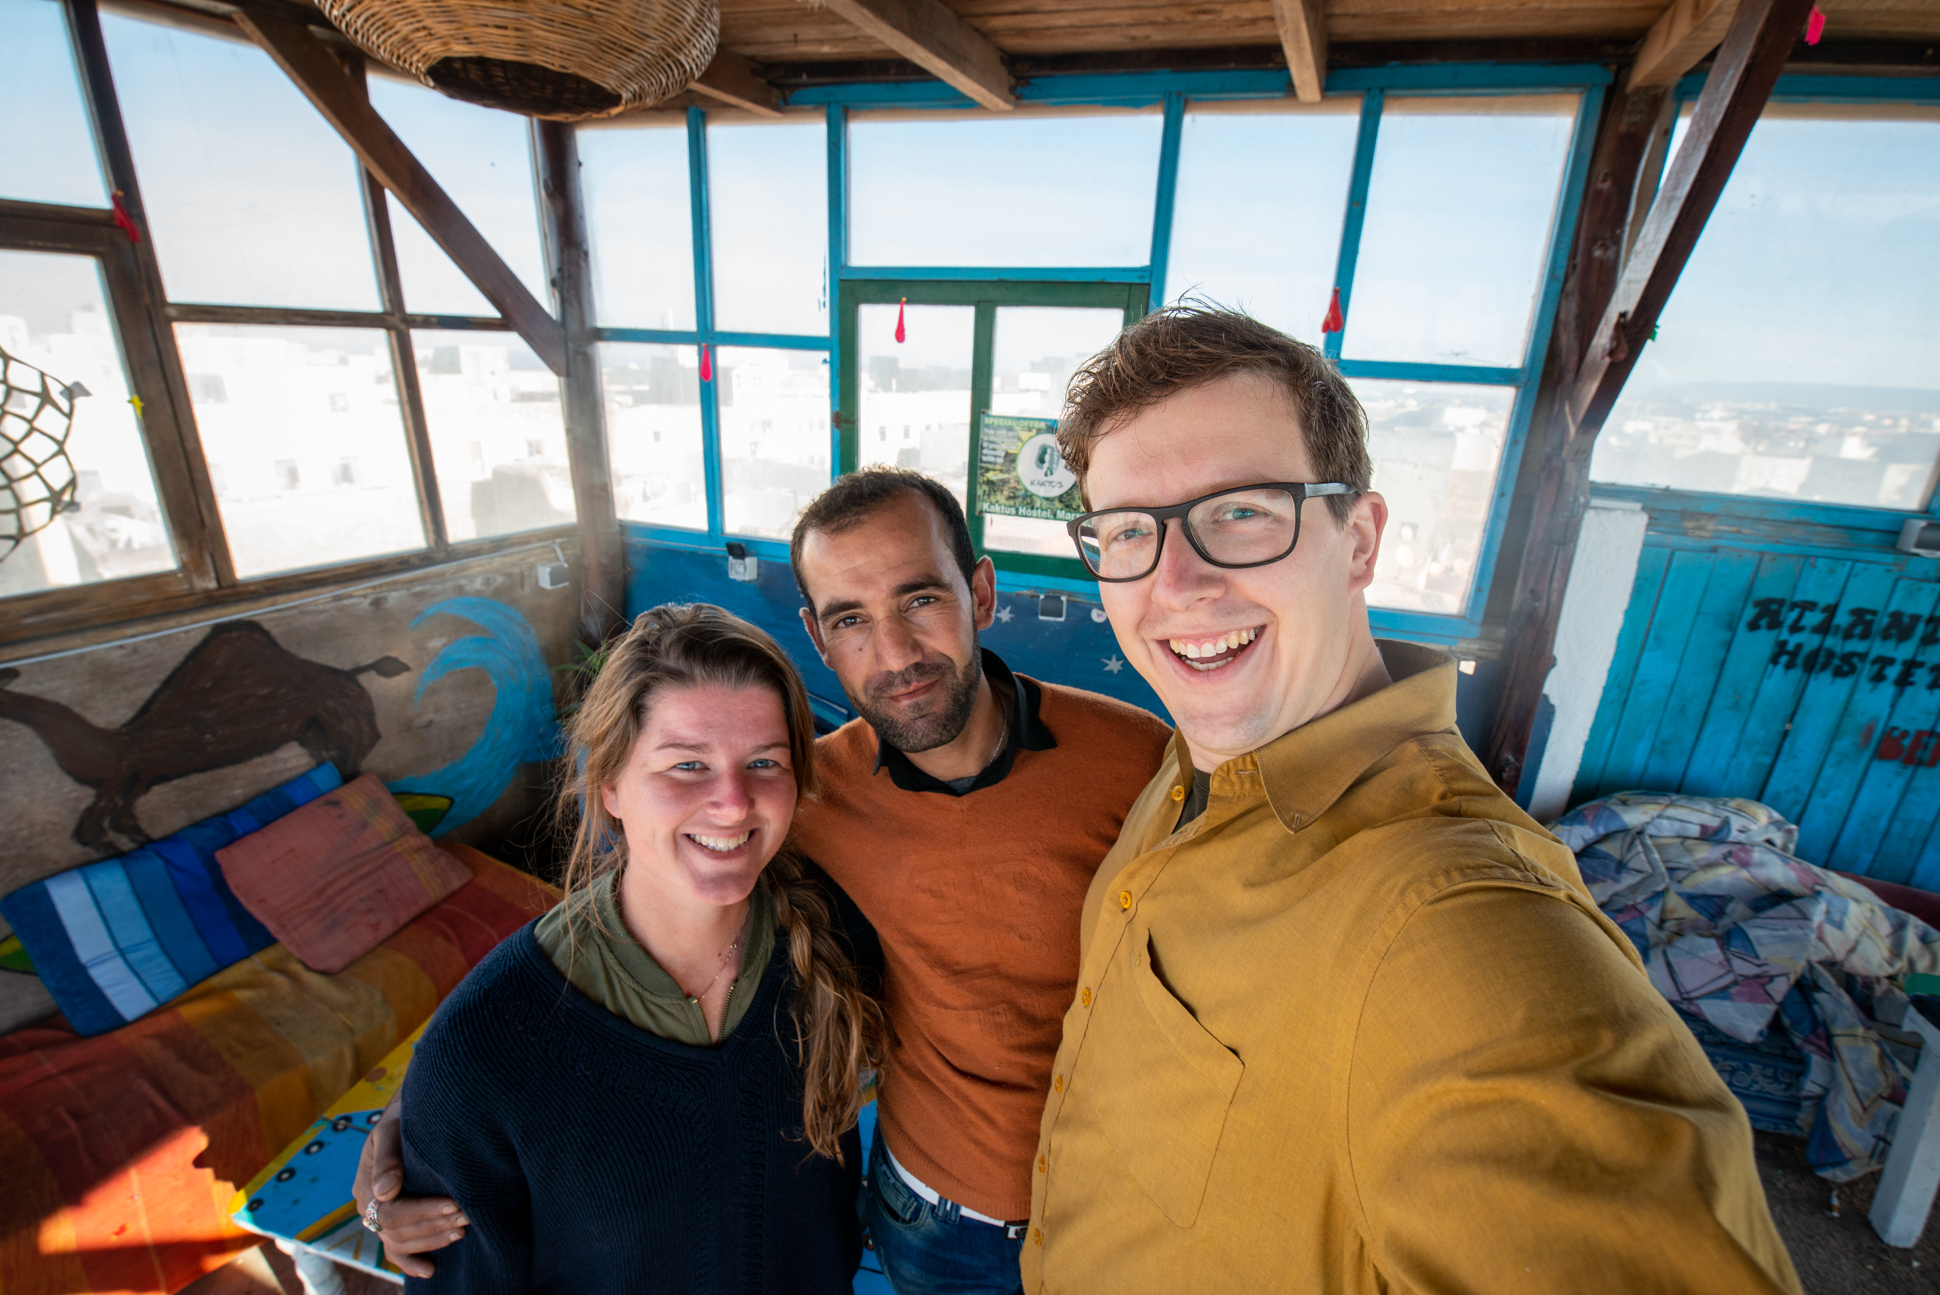 Selfie with couscous and Ellis & Me in the Atlantic hostel in Marrakech Morocco.